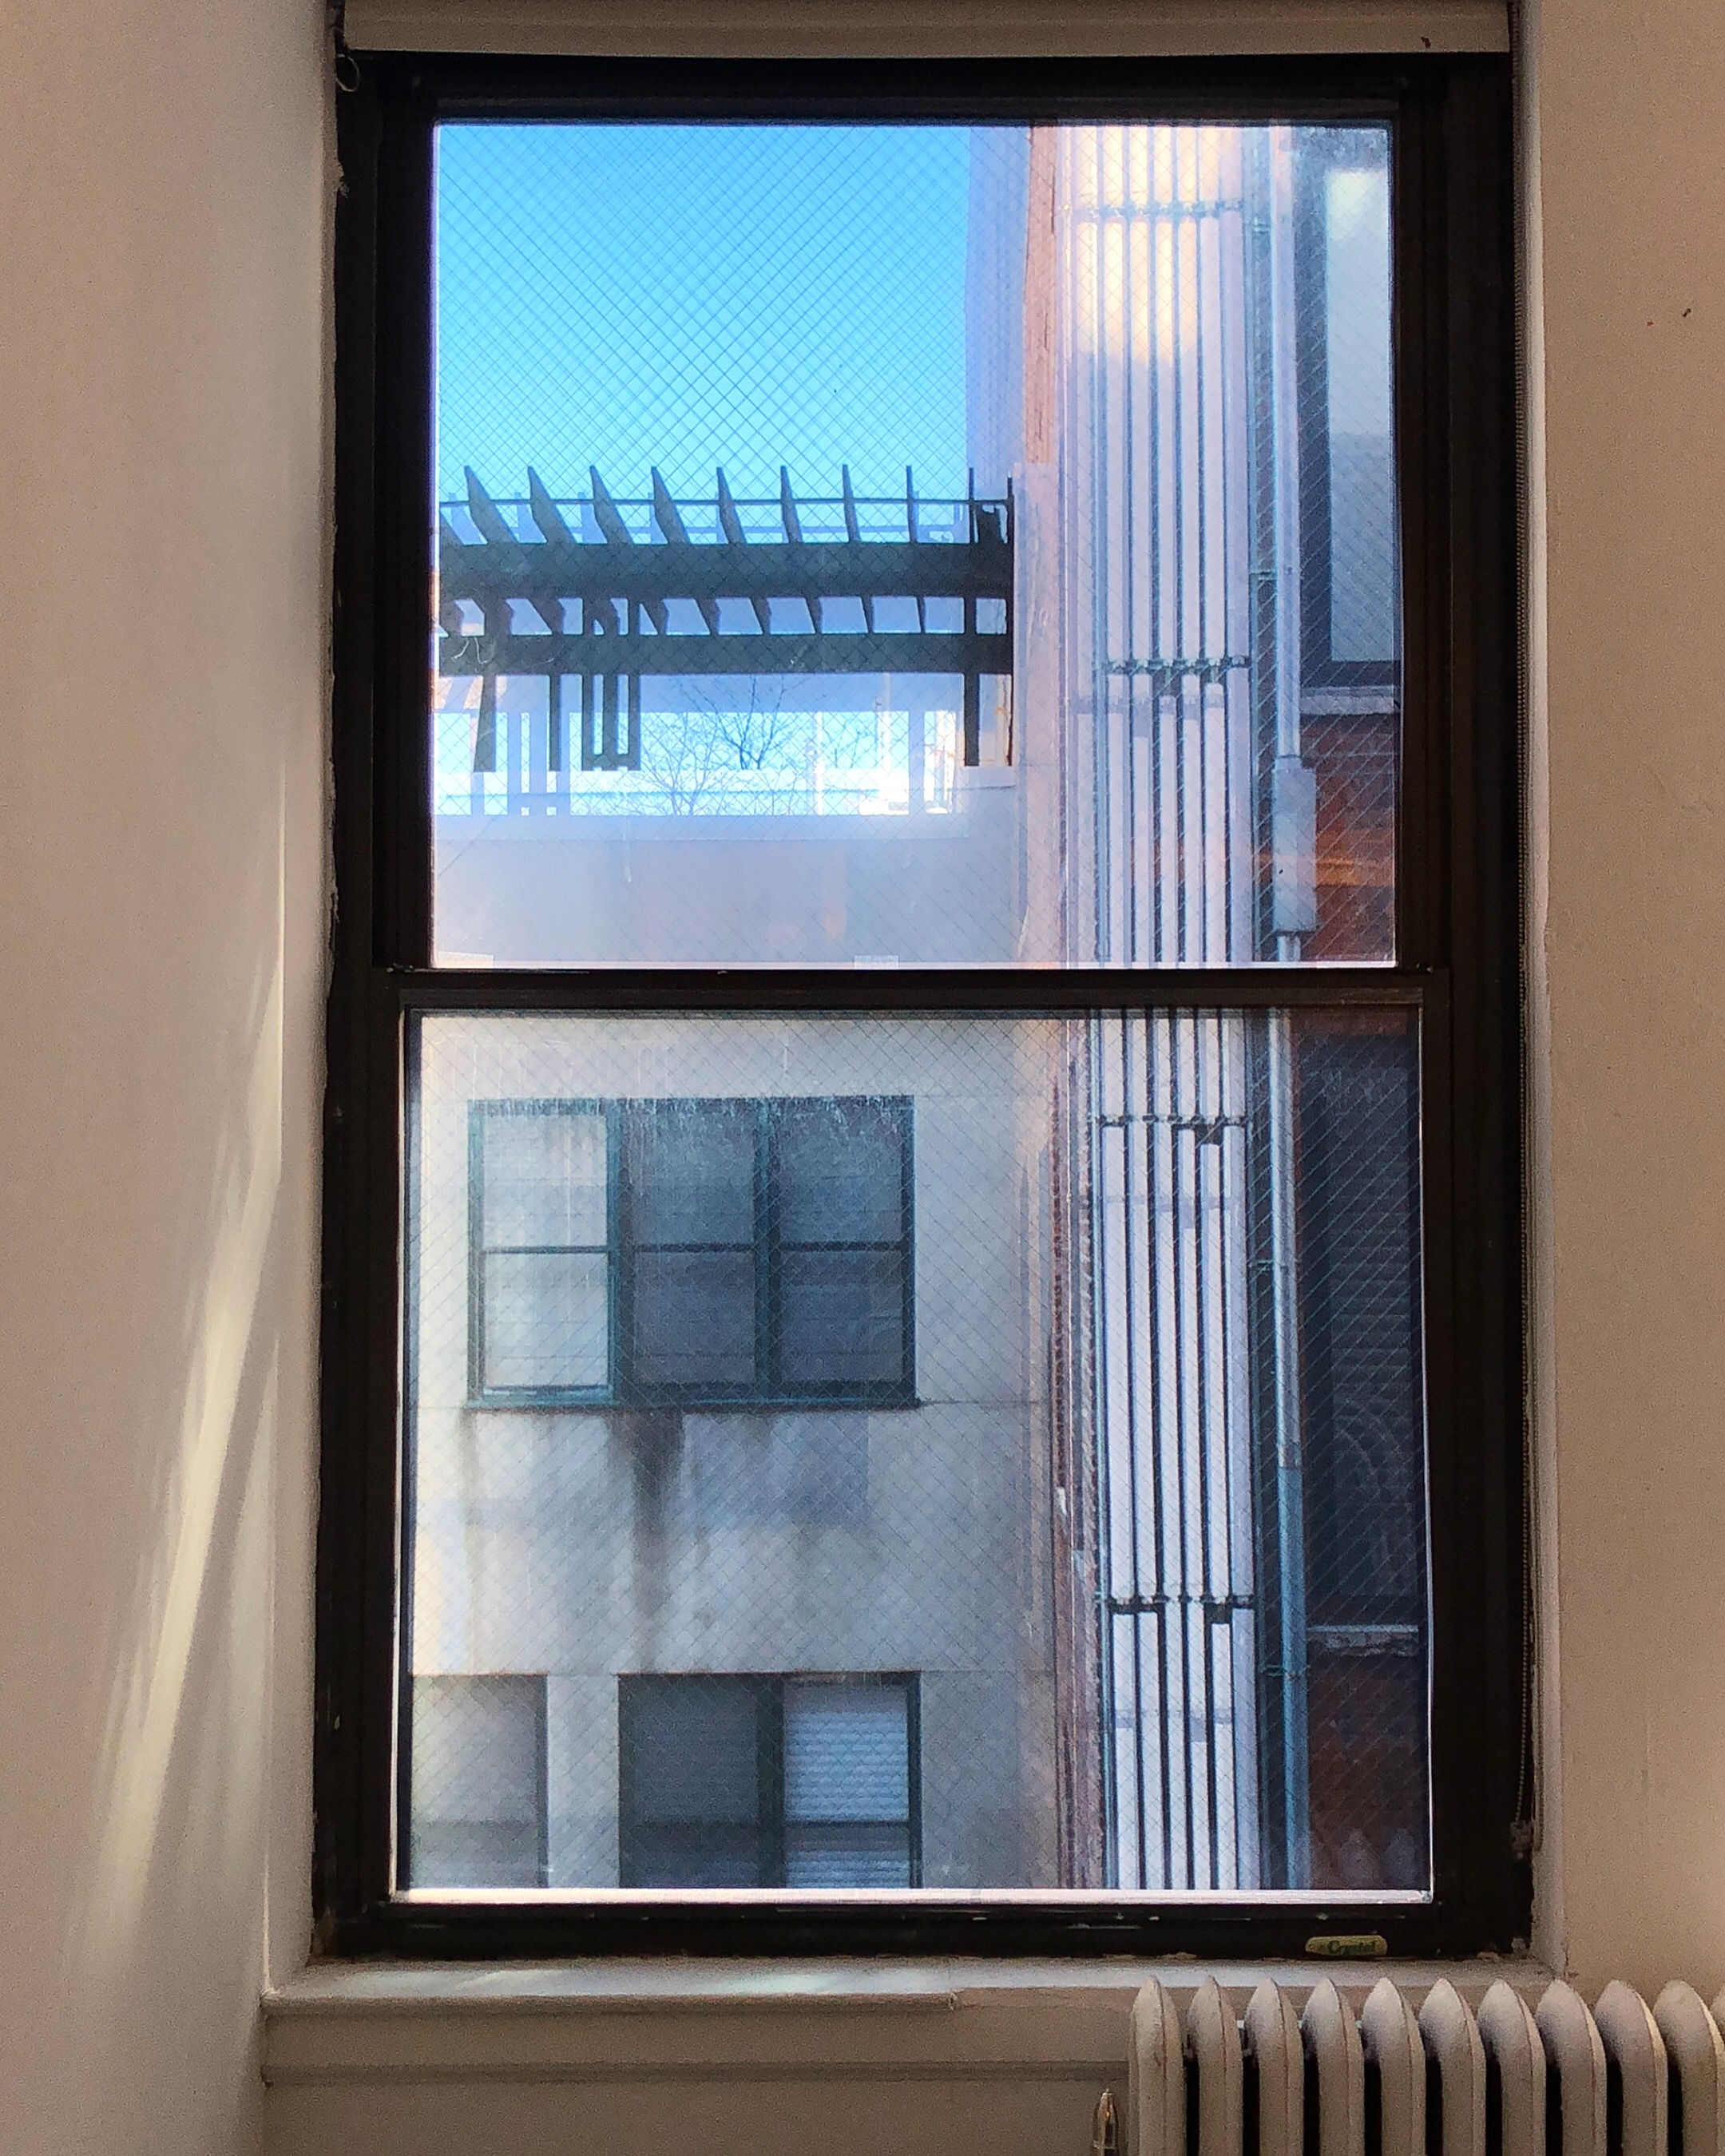 Installation view of Window